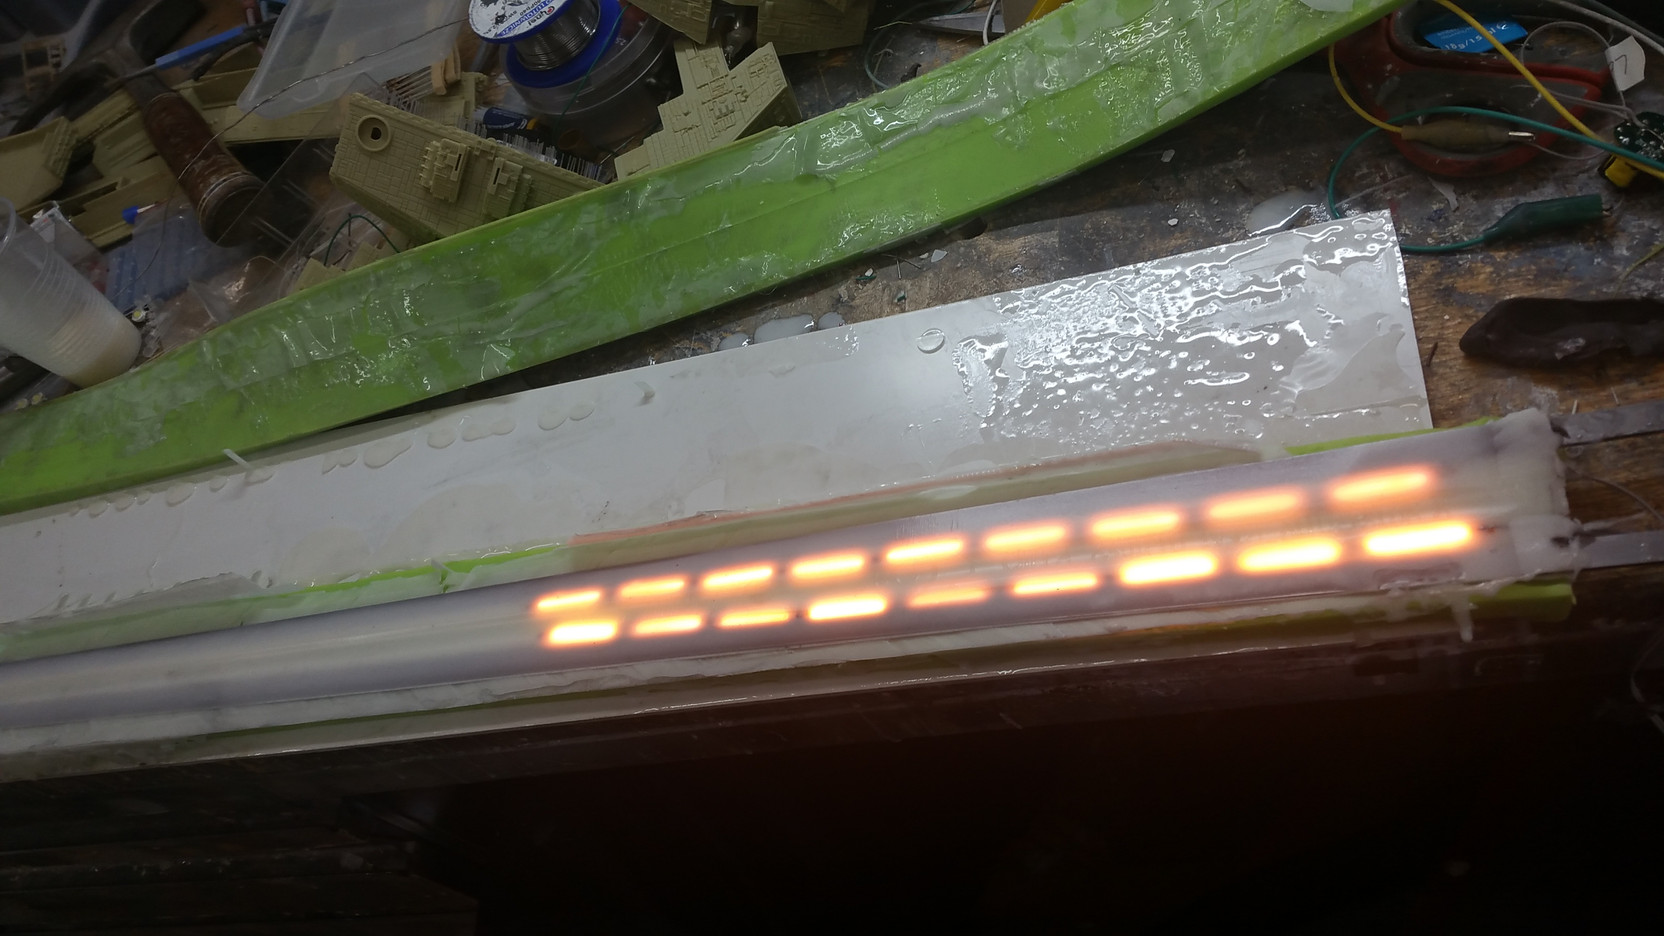 Witcher Sword electronics. Some Day i will finish it ;)